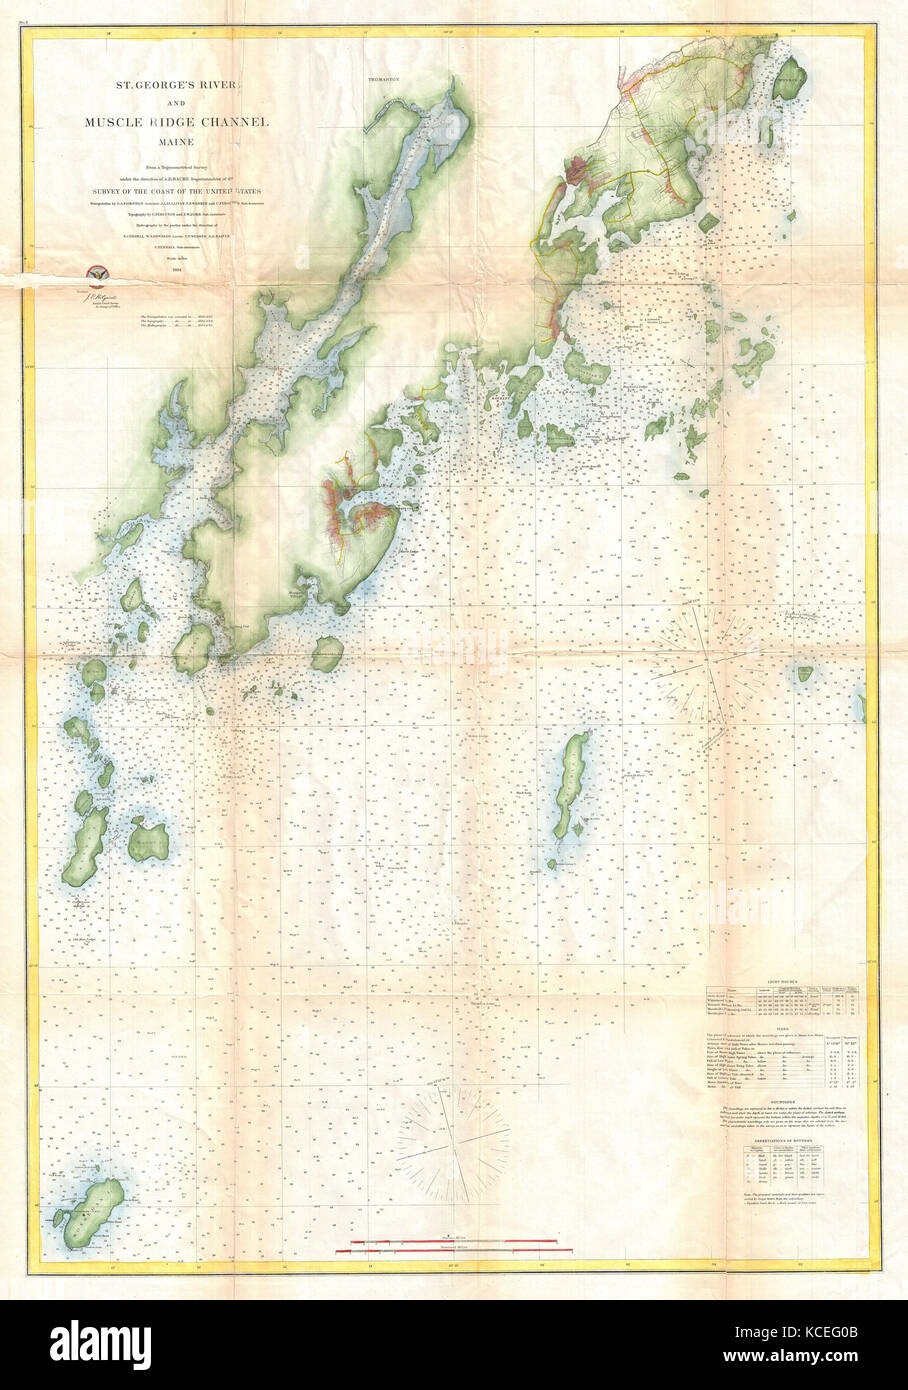 1864 Us Coast Survey Map Or Chart Of St Georges River And Muscle - Us-map-1864